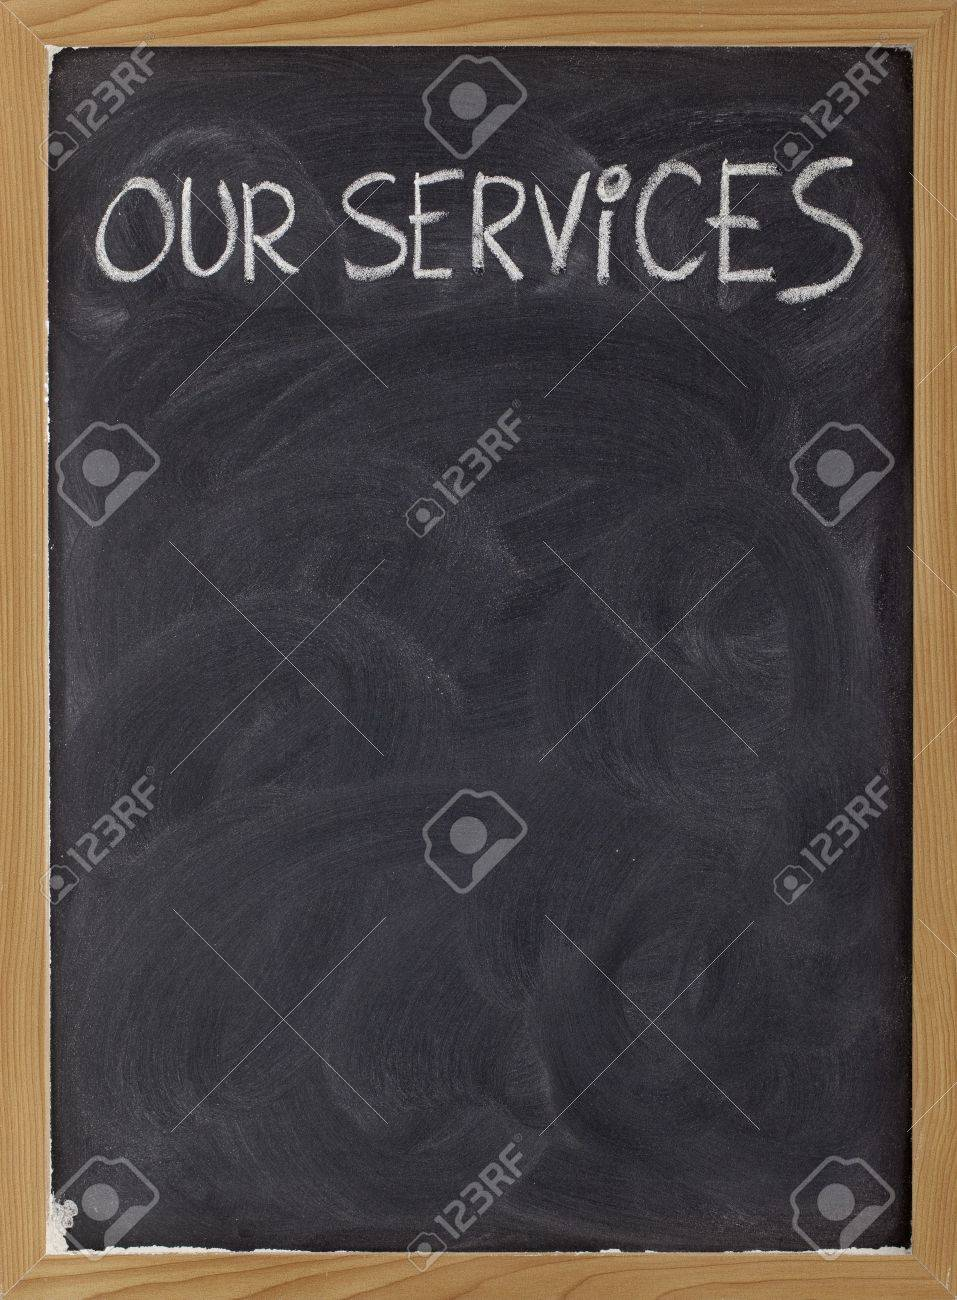 our services - white chalk handwriting on blackboard with eraser smudges, copy space below Stock Photo - 6564743